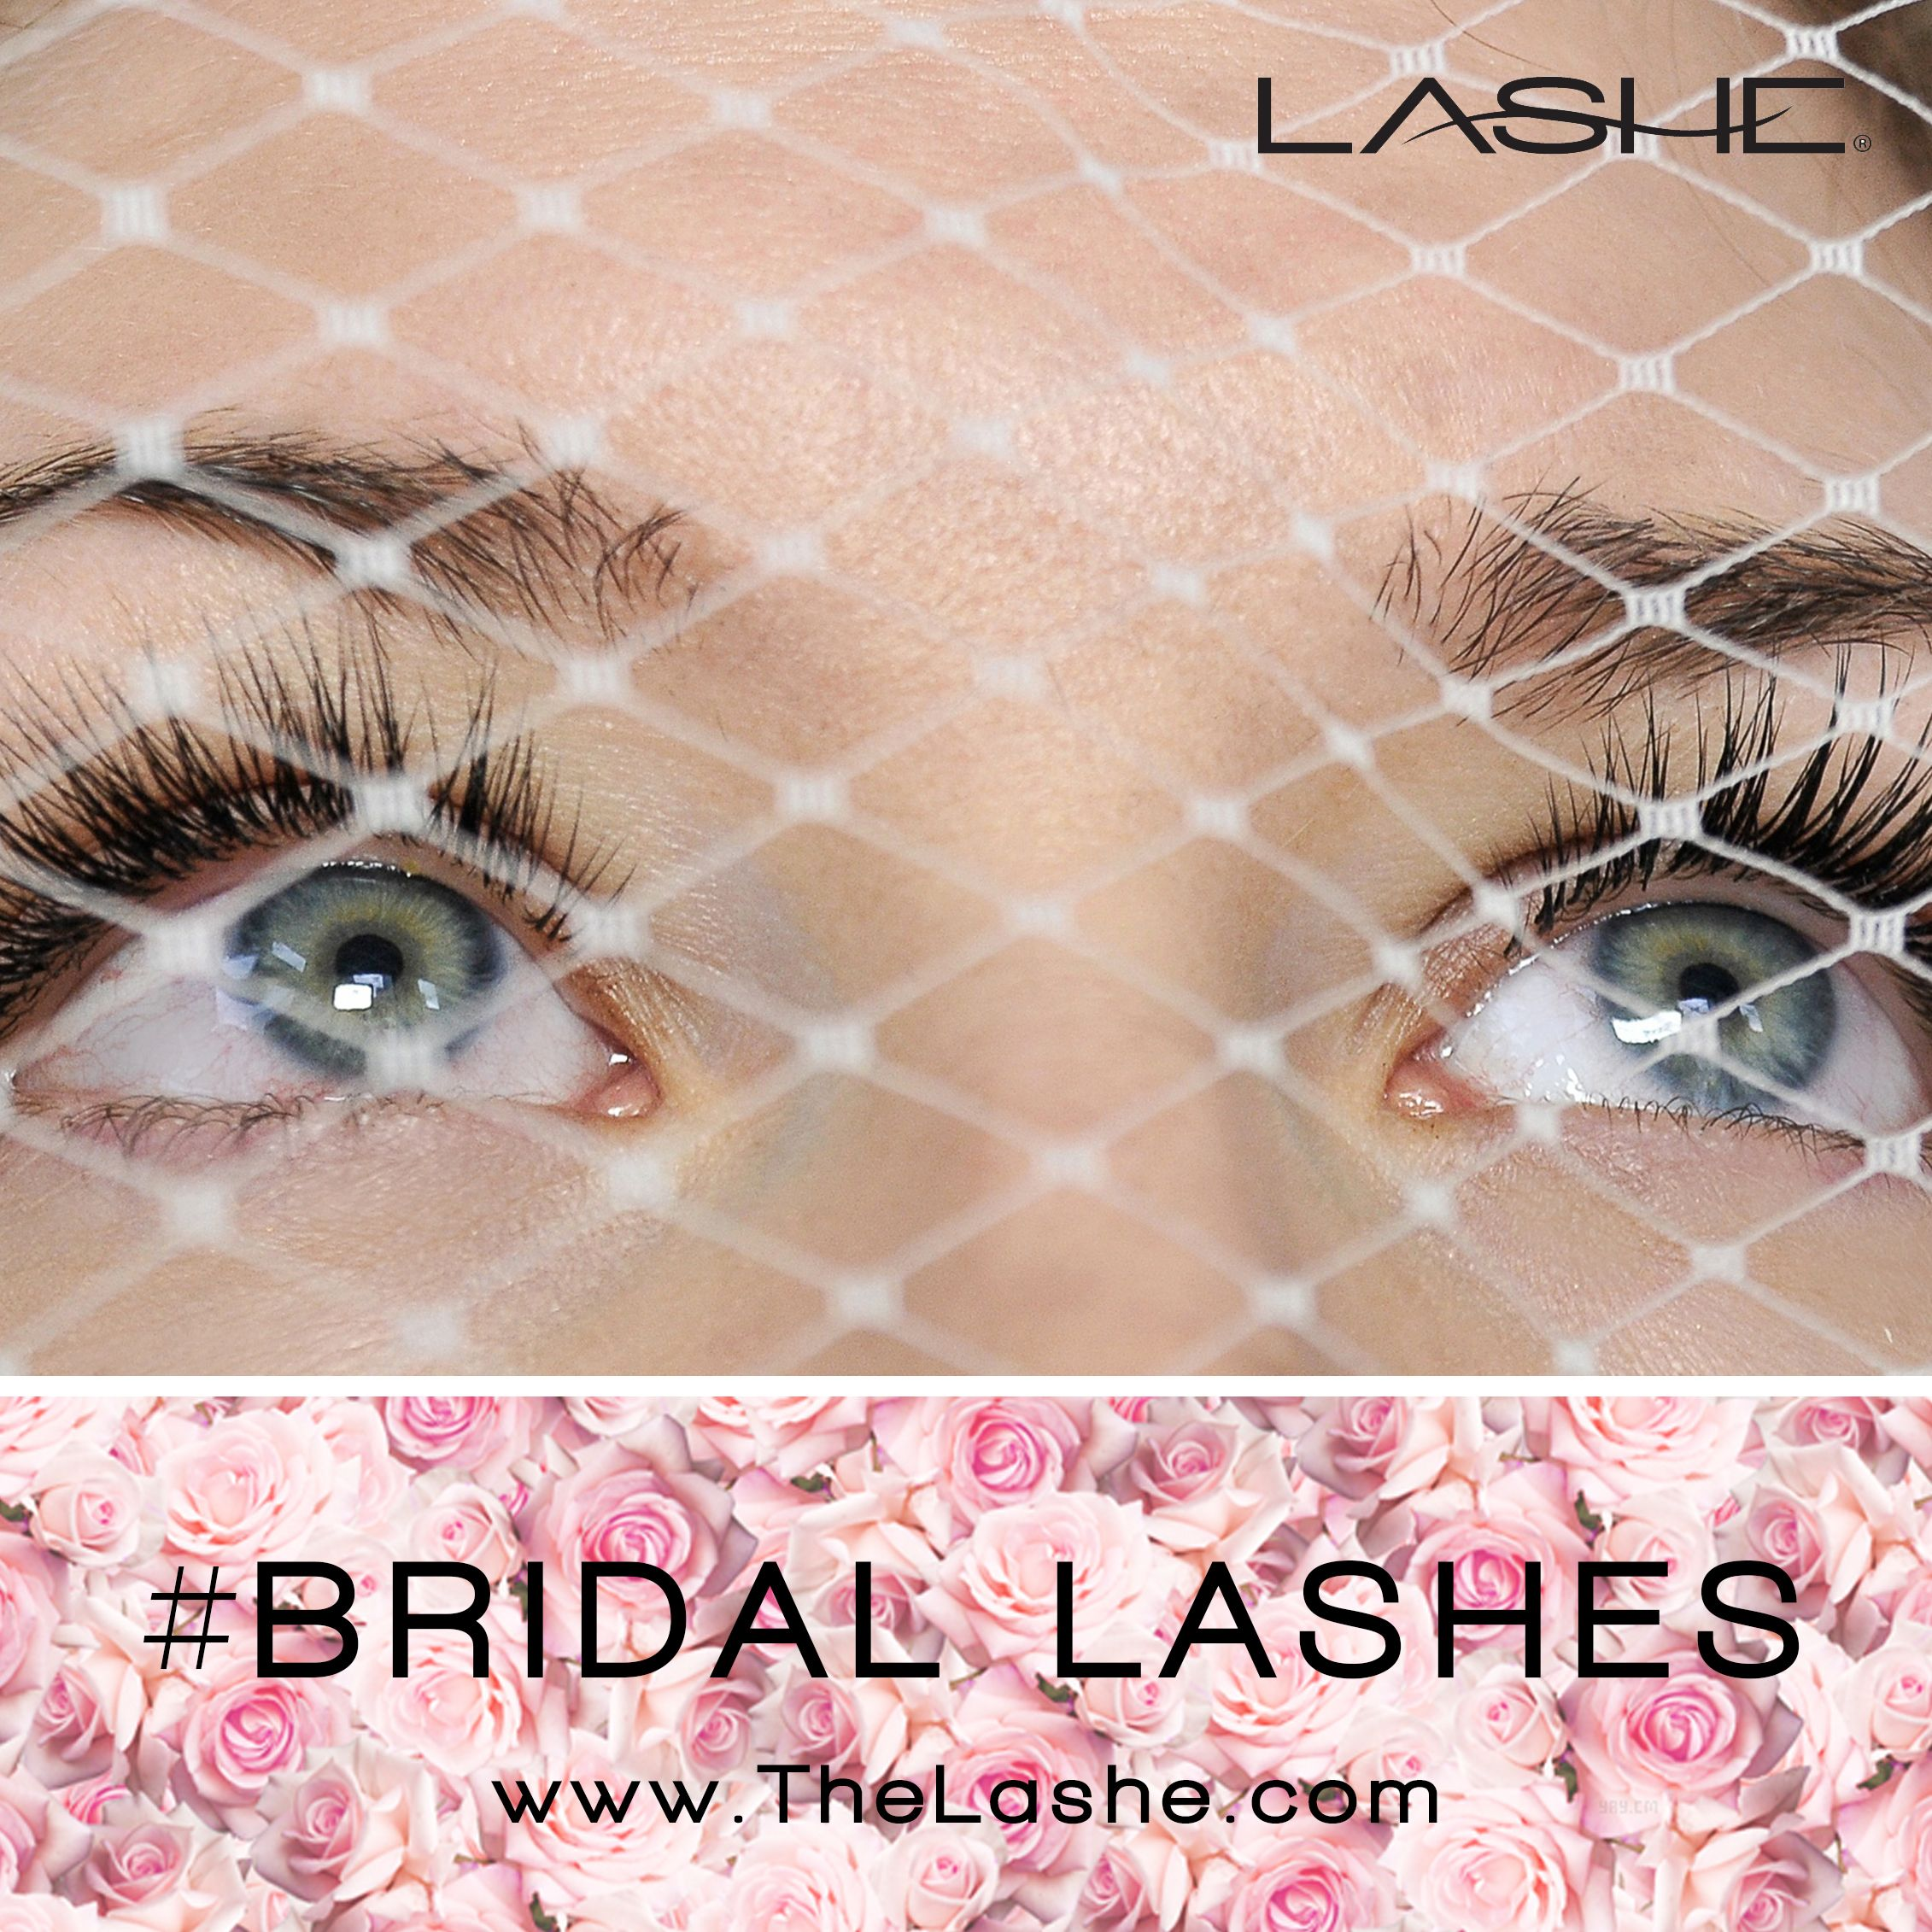 Eyelash extensions are like makeup trials if your new to